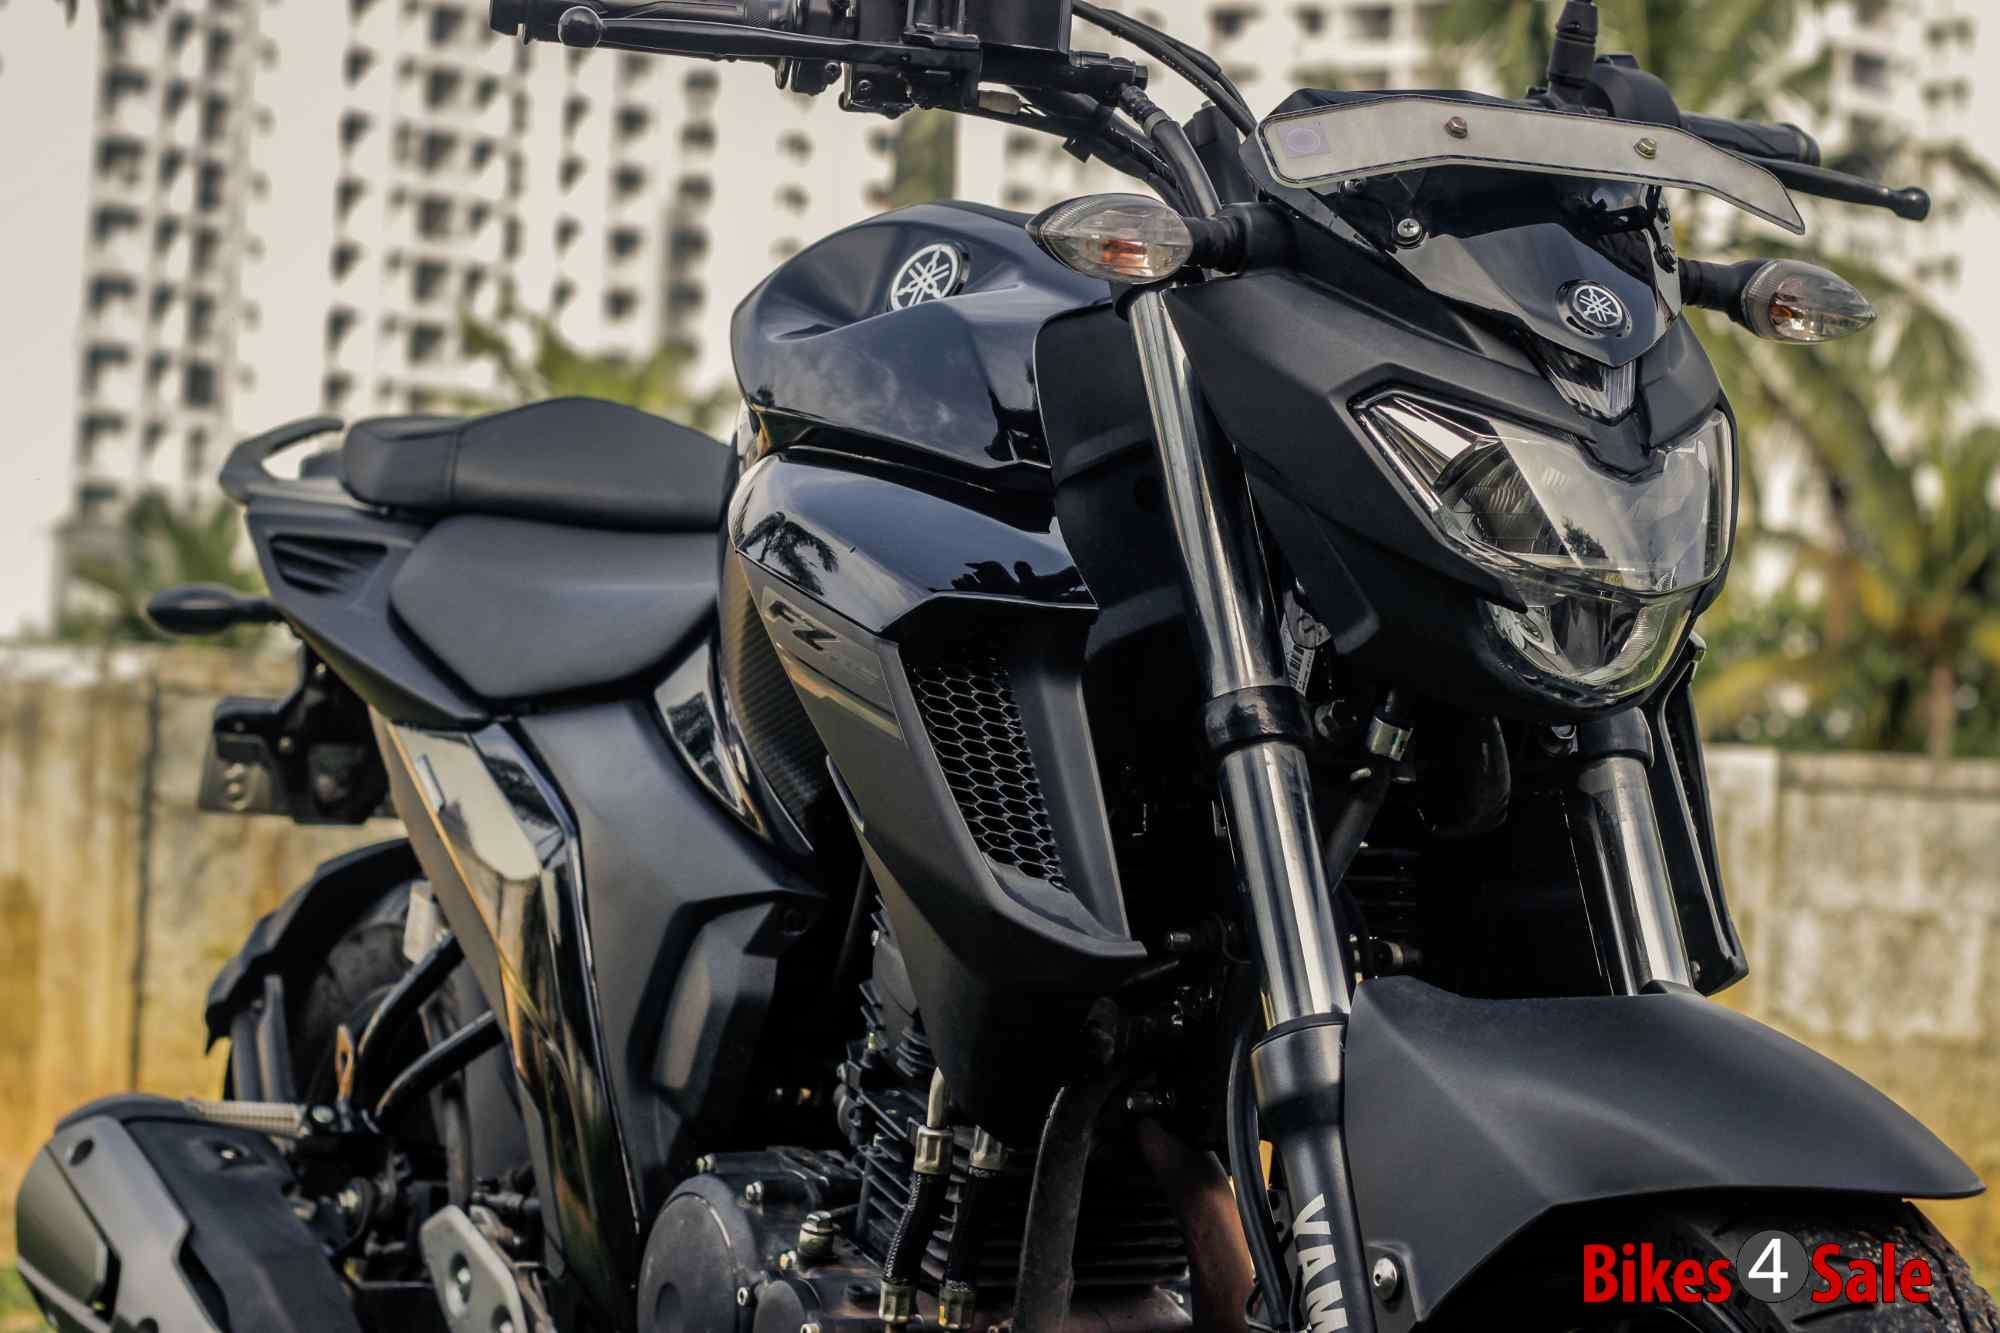 Yamaha Bikes Fz Price In India